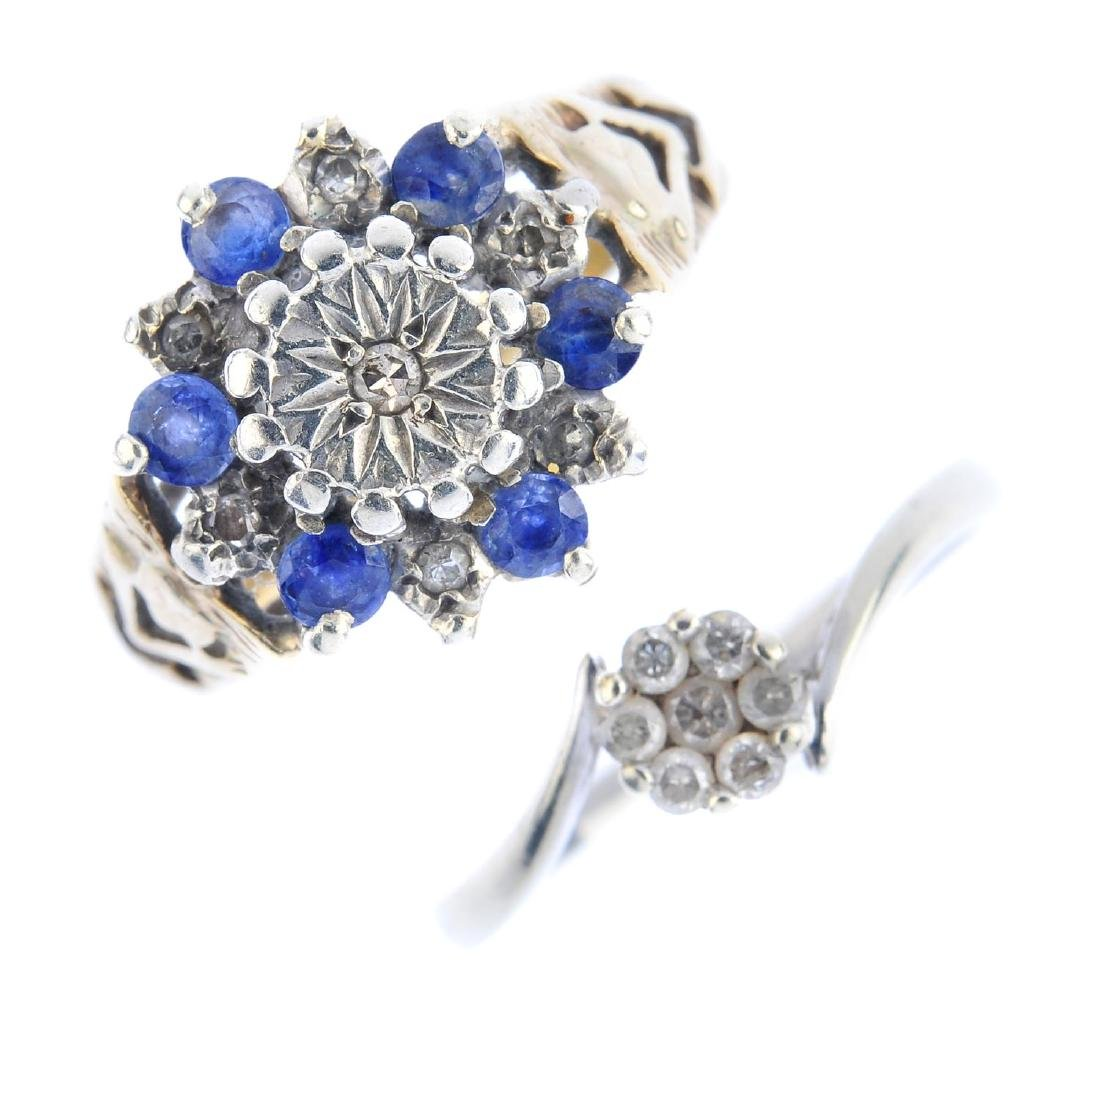 Four diamond, sapphire and amethyst rings. To include a